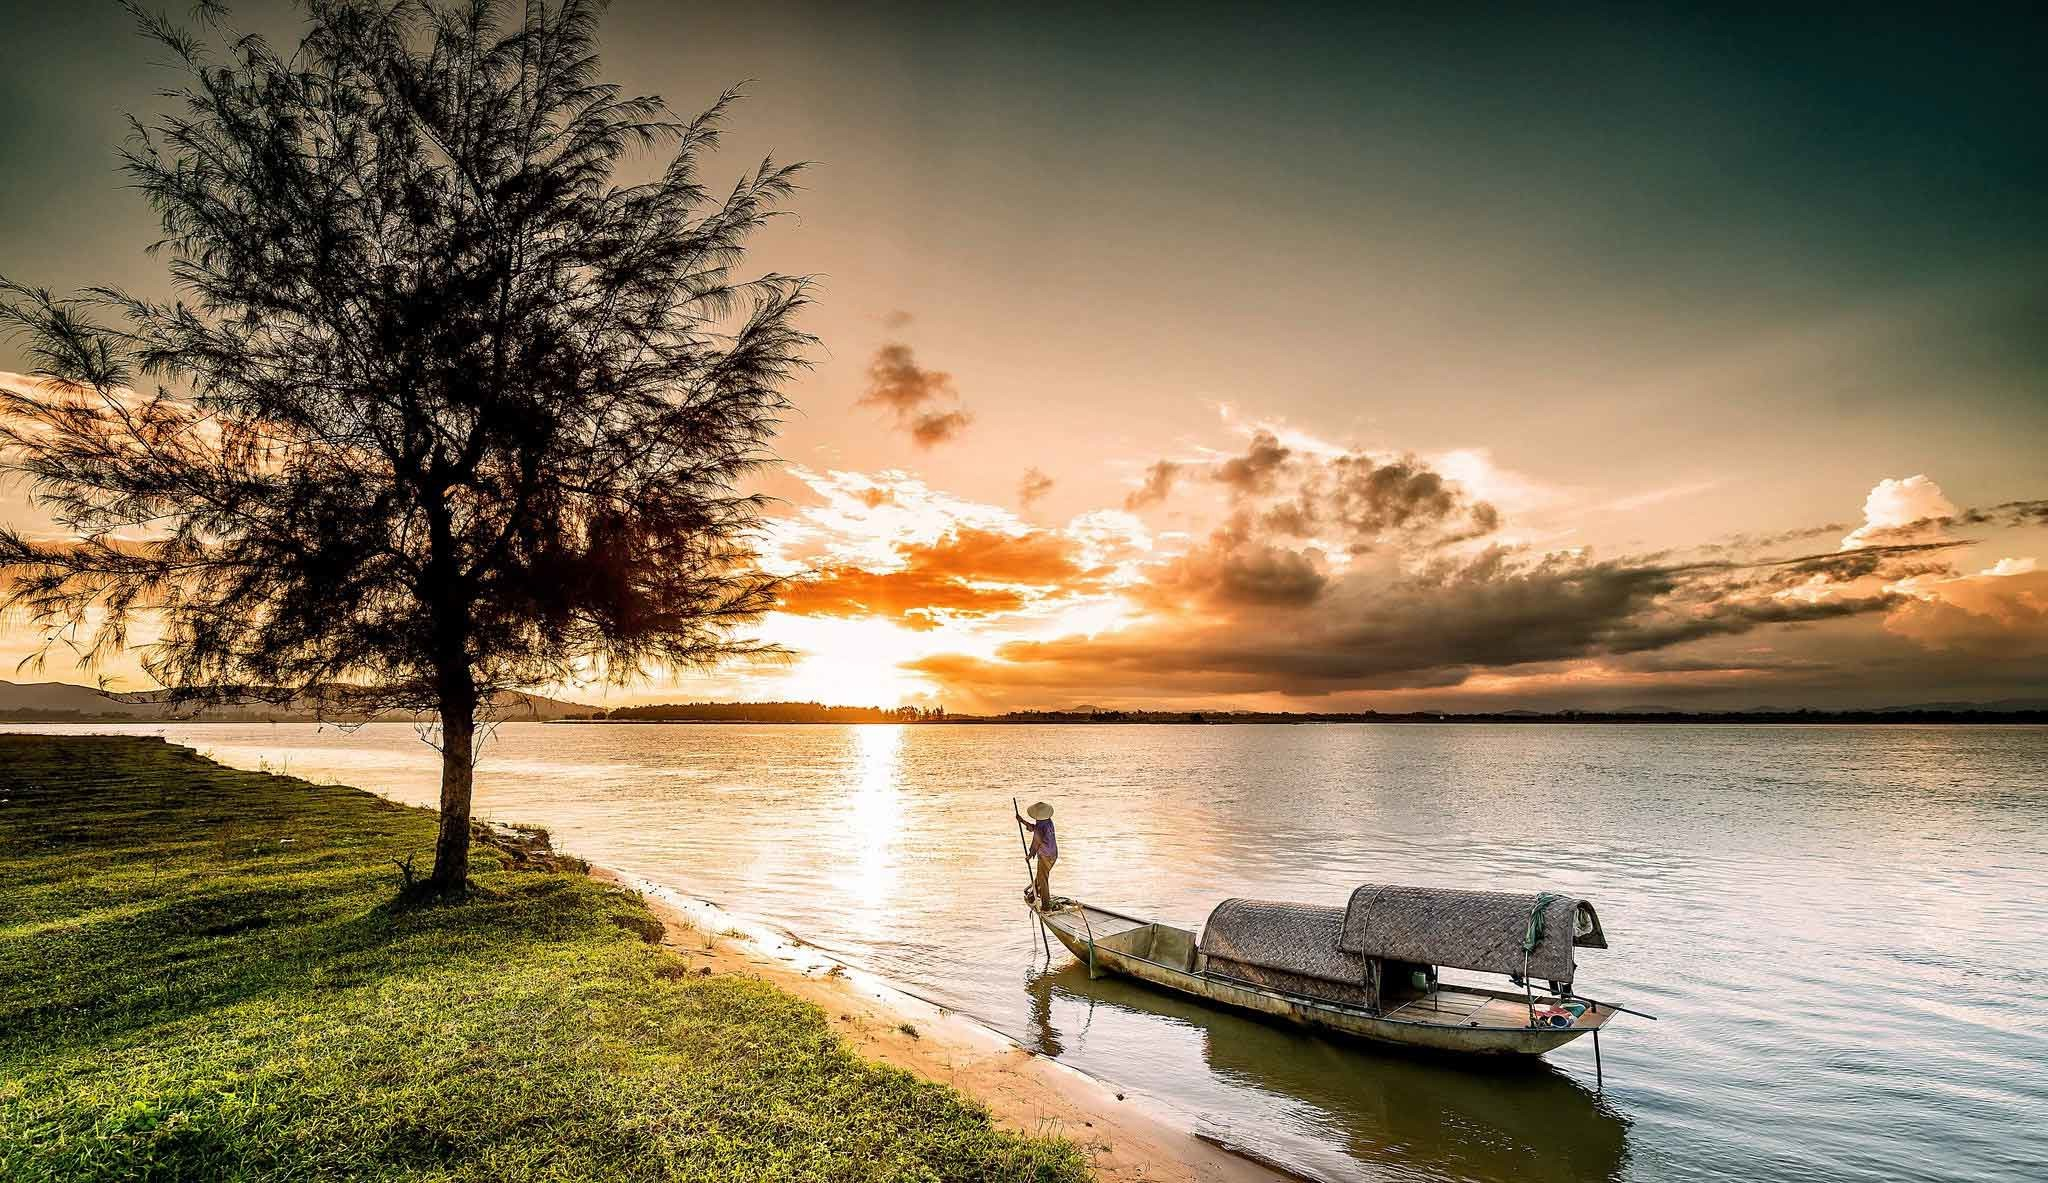 2048x1183 Sunrise Sunset Ocean Vinh Rivers Vietnam Trees Sunrises Boats Sunsets  Nature Animated Wallpapers For Mobile